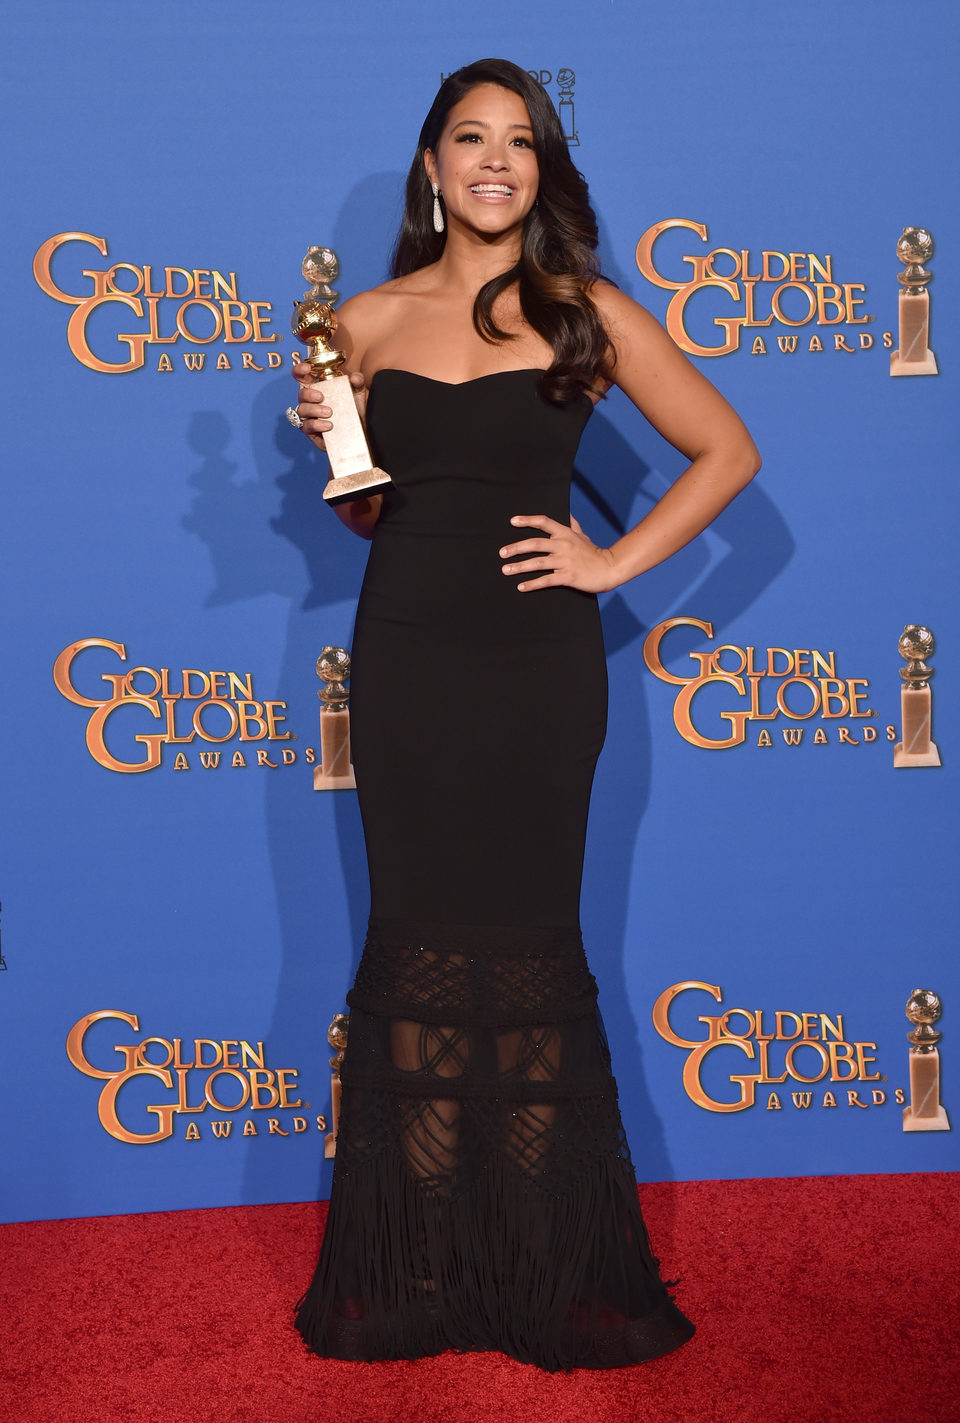 Gina Rodriguez, winner of the Golden Globe 2015 for the best comedy actress